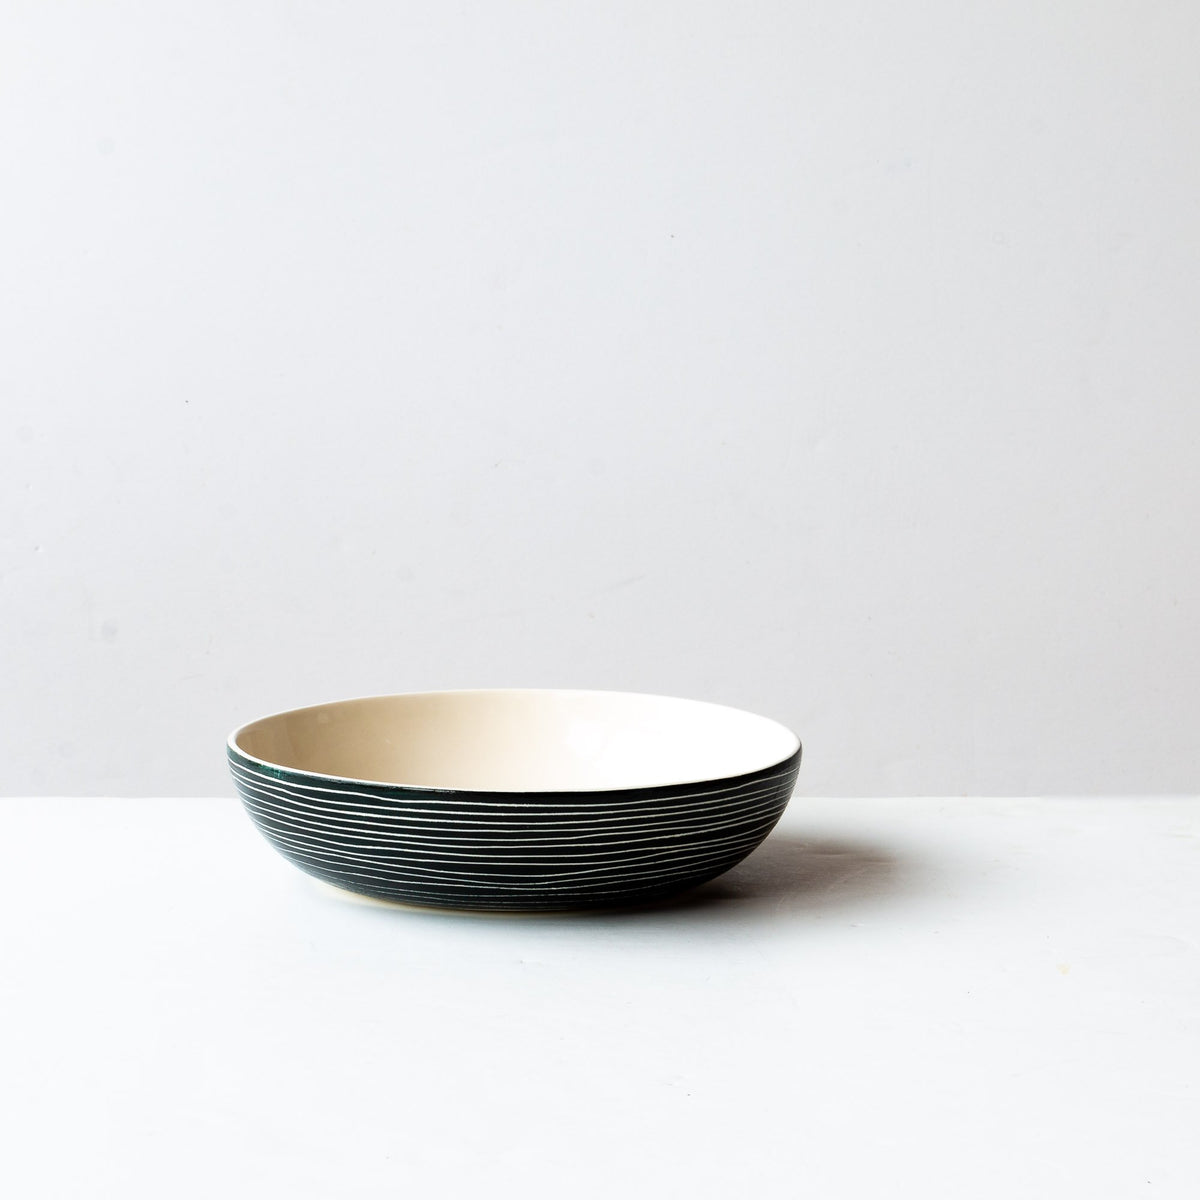 Hand Carved Ceramic Pasta / Salad Bowl With Stripes - Sold by Chic & Basta